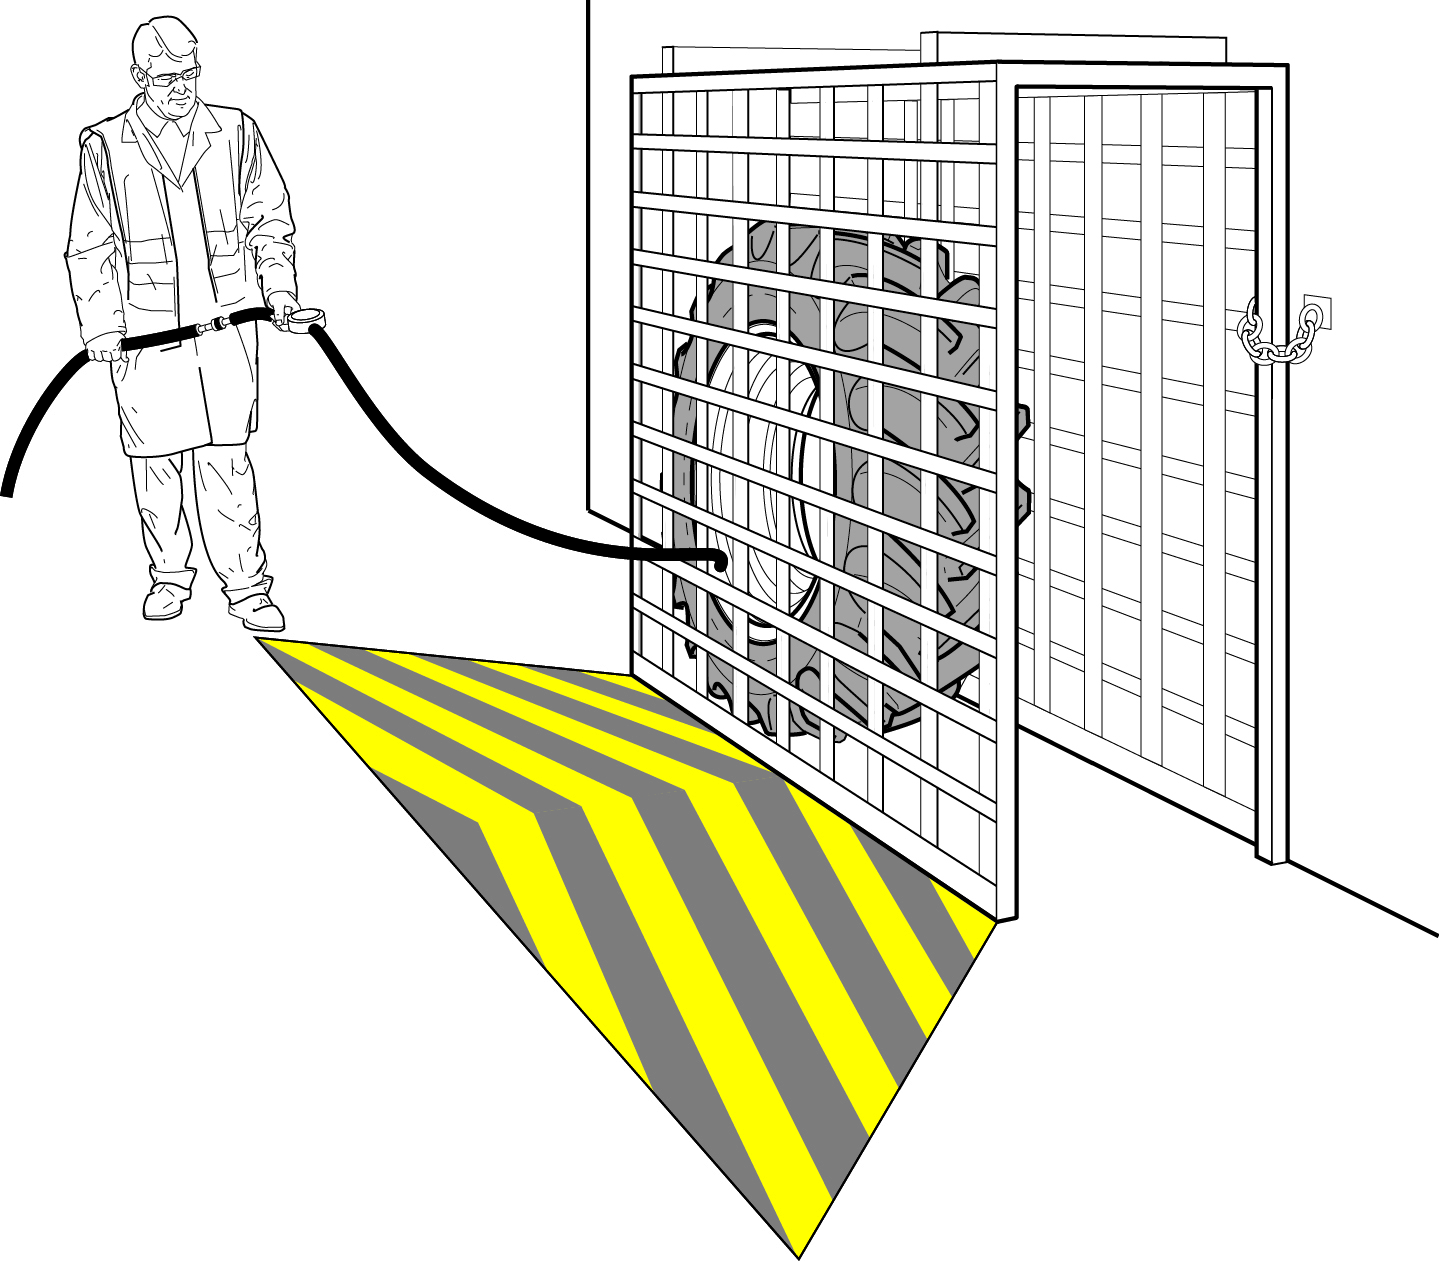 Picture of secure cage for inflating large tyres